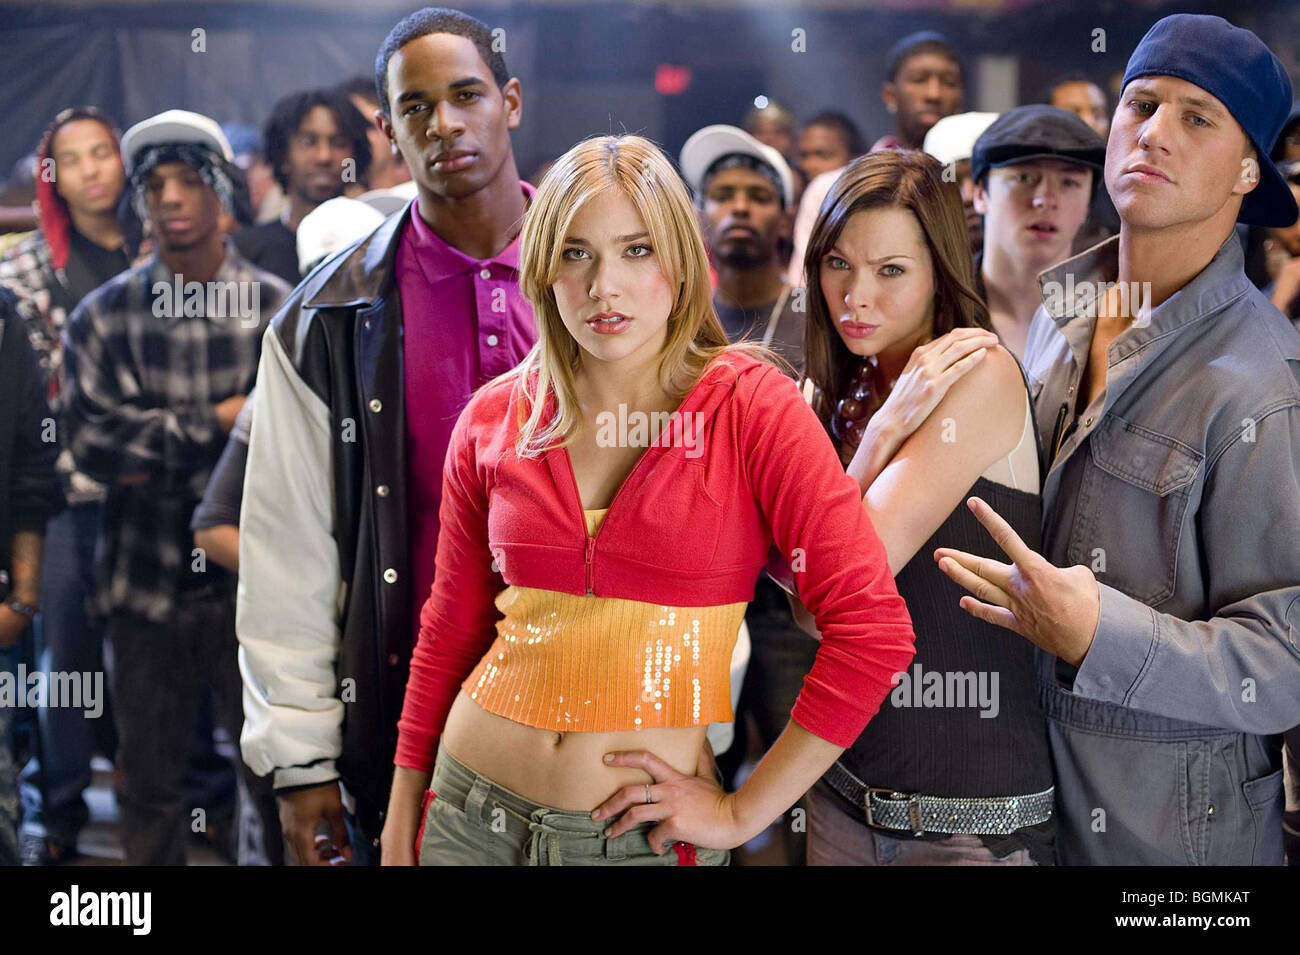 Dance Flick Year : 2009 Director : Damien Dante Wayans Damon Wayans Jr., Shoshana Bush, Christina Murphy, Ross Thomas - Stock Image